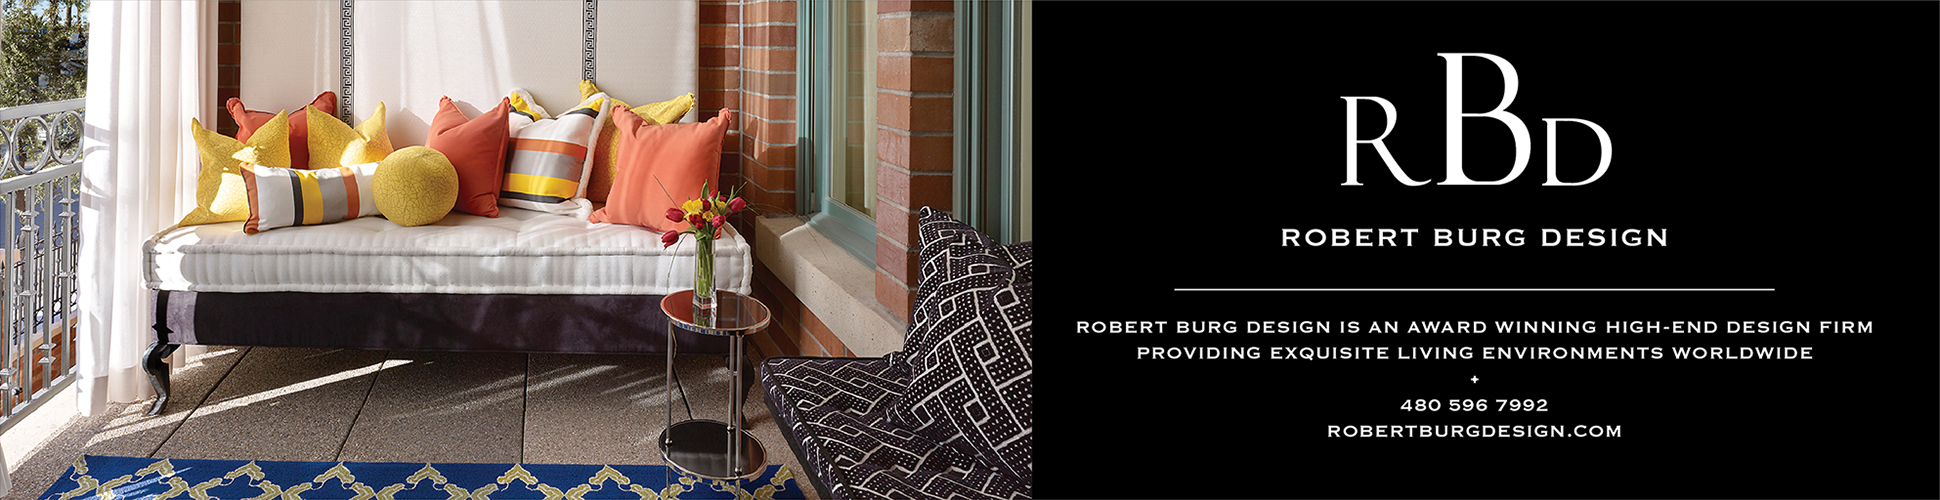 Visit Robert Burg Design billboard